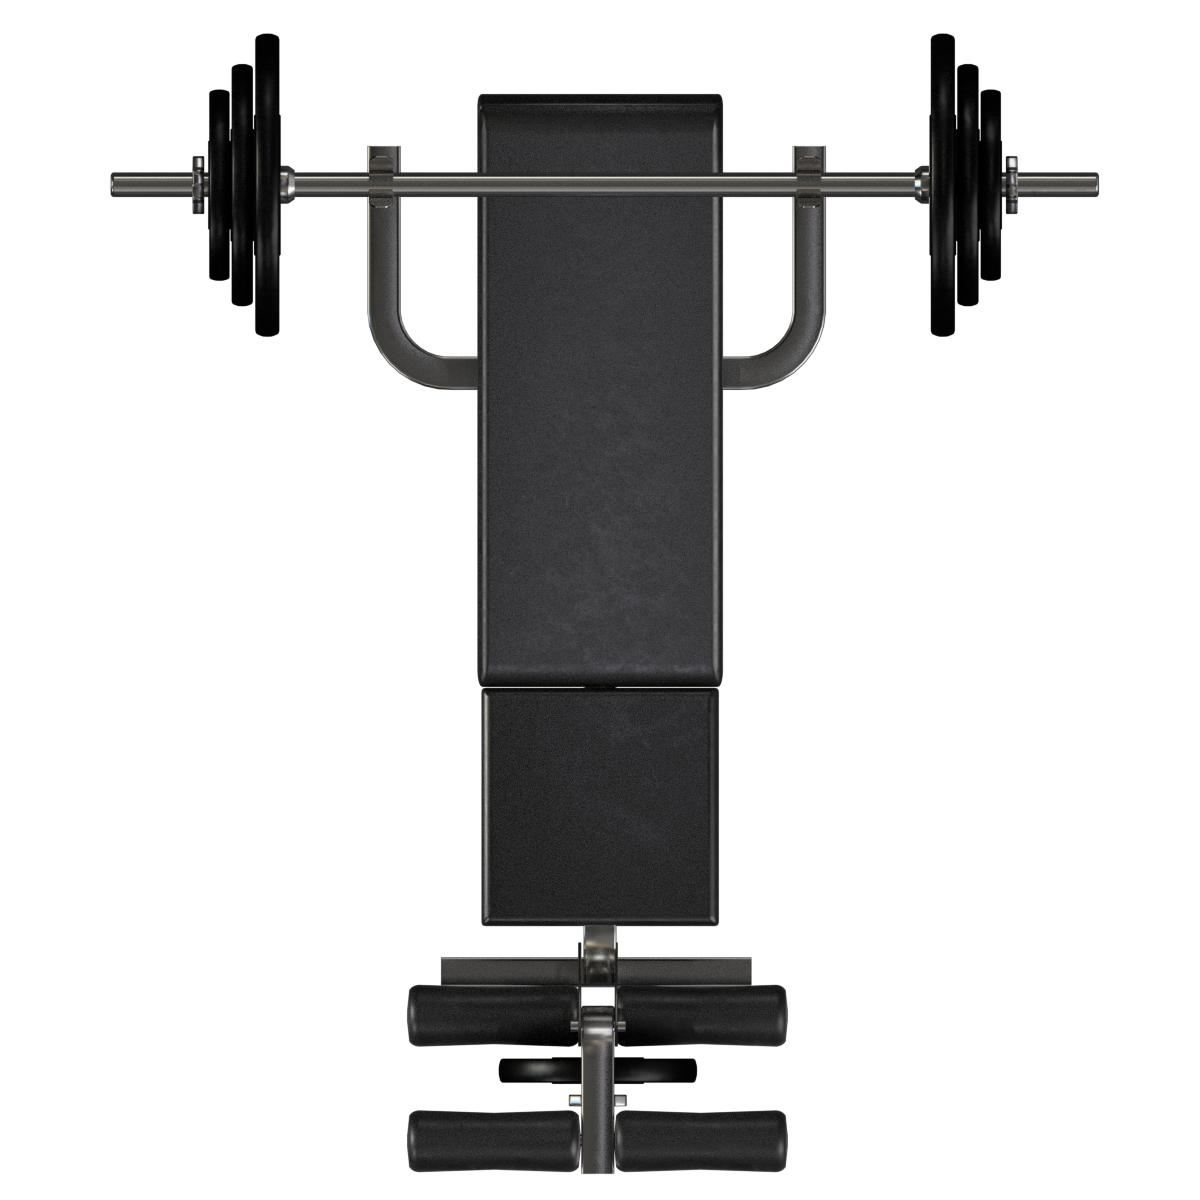 Gym Machines Top View, HD Png Download - kindpng